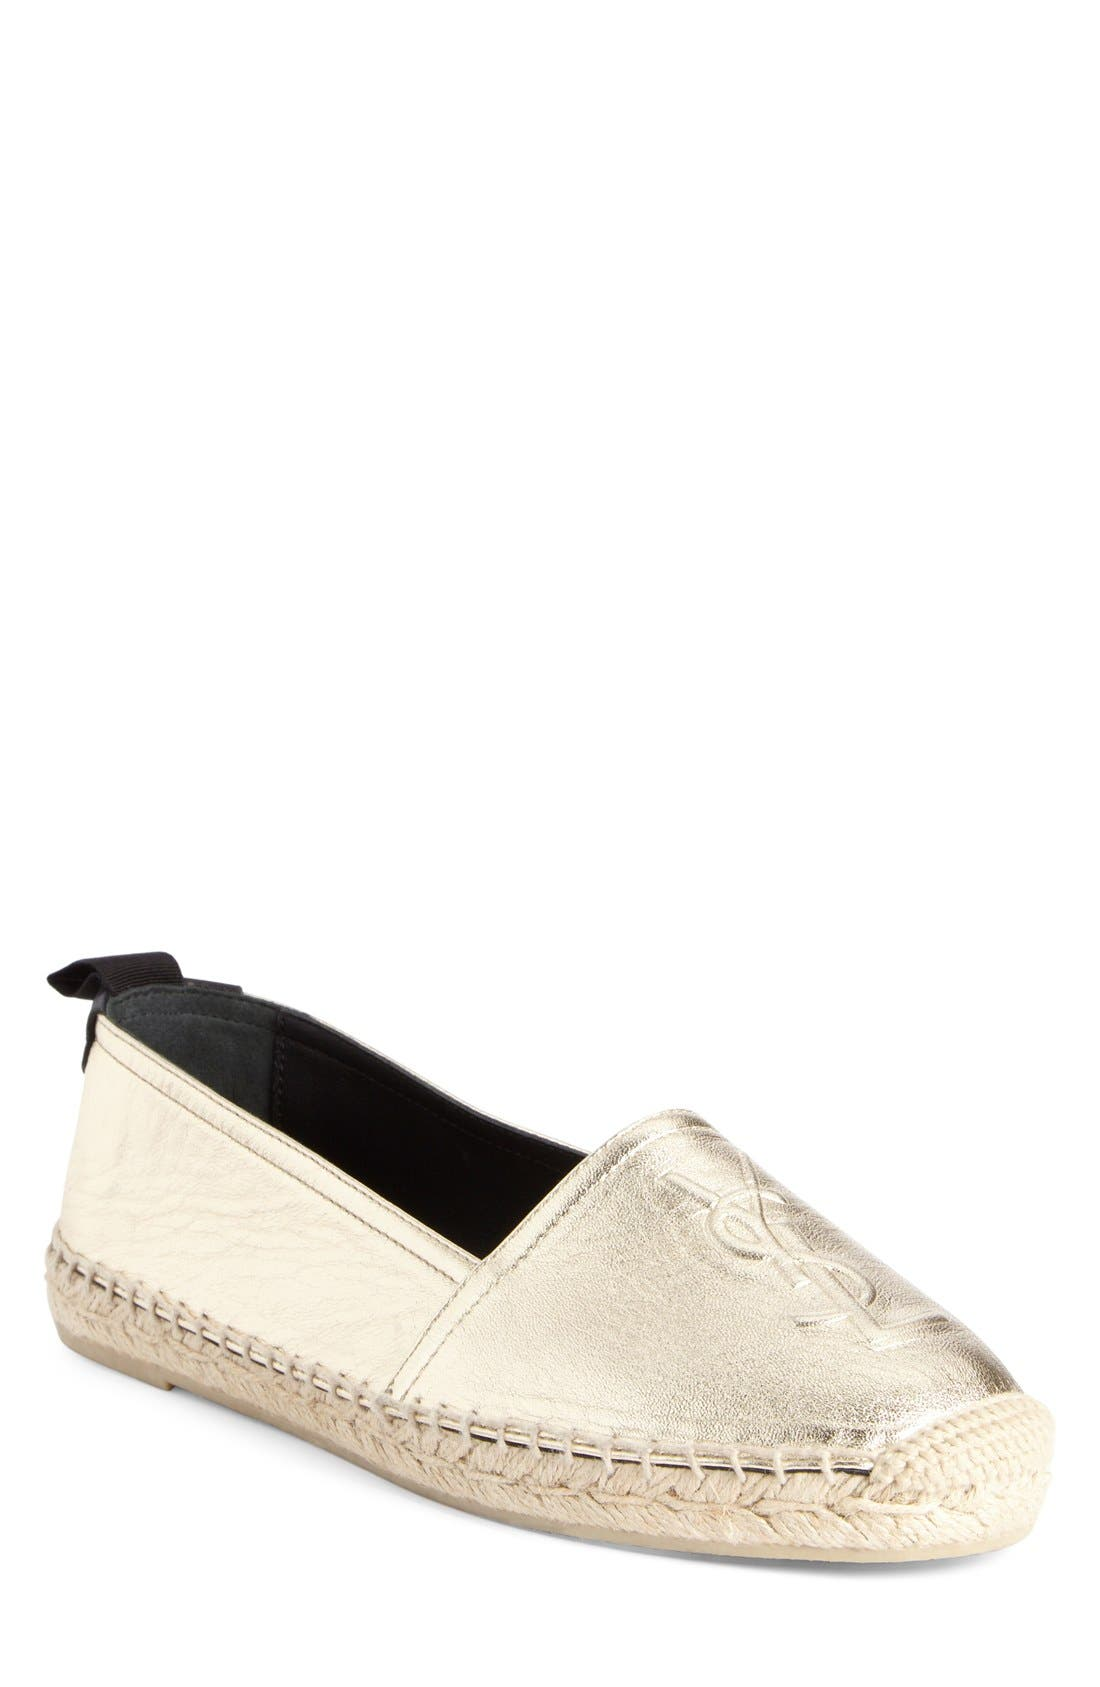 SAINT LAURENT Logo Espadrille